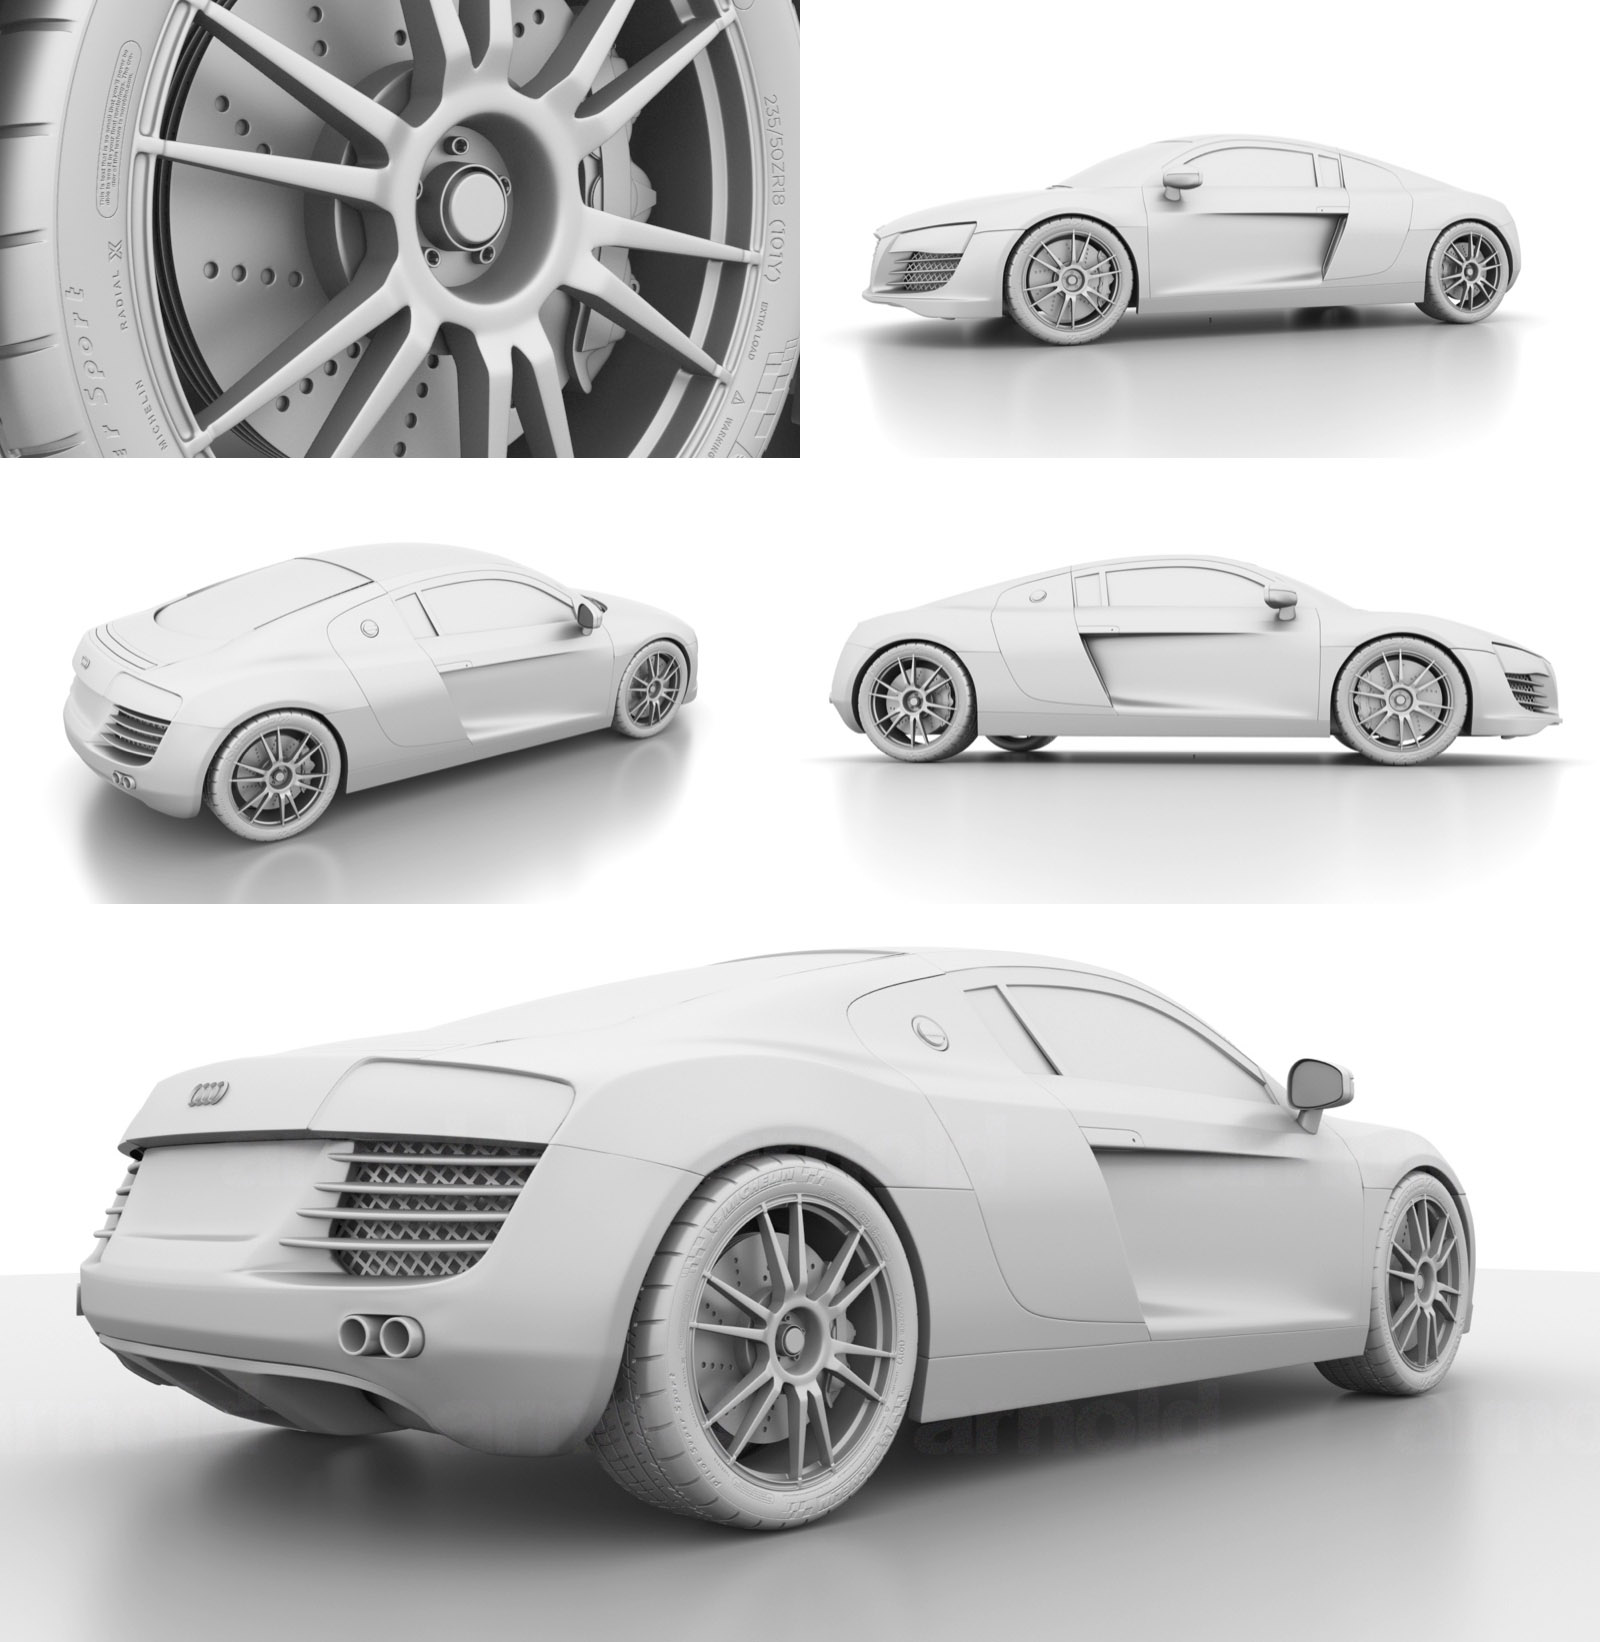 Maya norebbo audi r8 3d model maya malvernweather Image collections